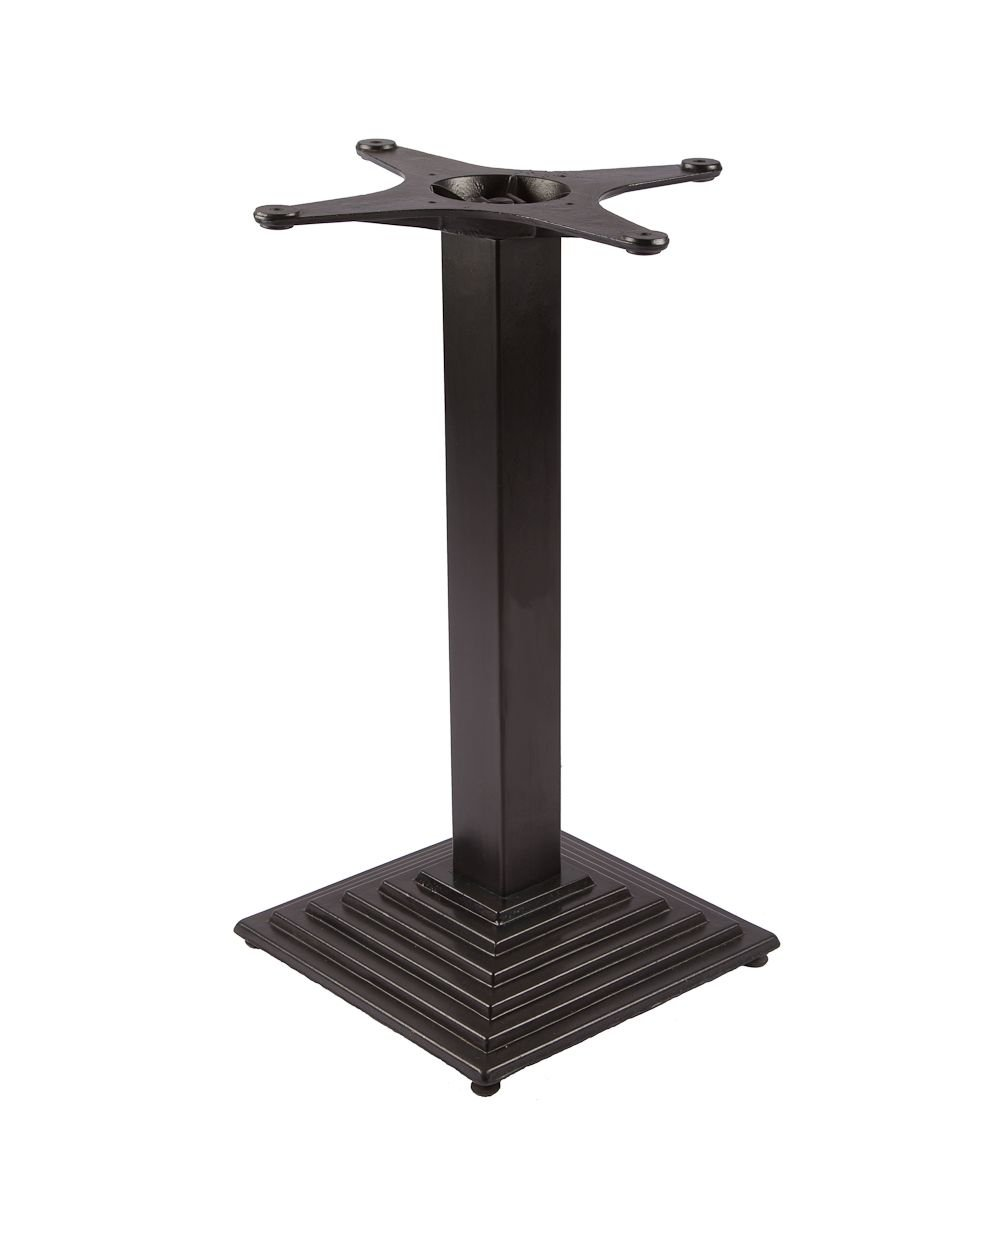 Tb dining height cast iron indoor decorative table base